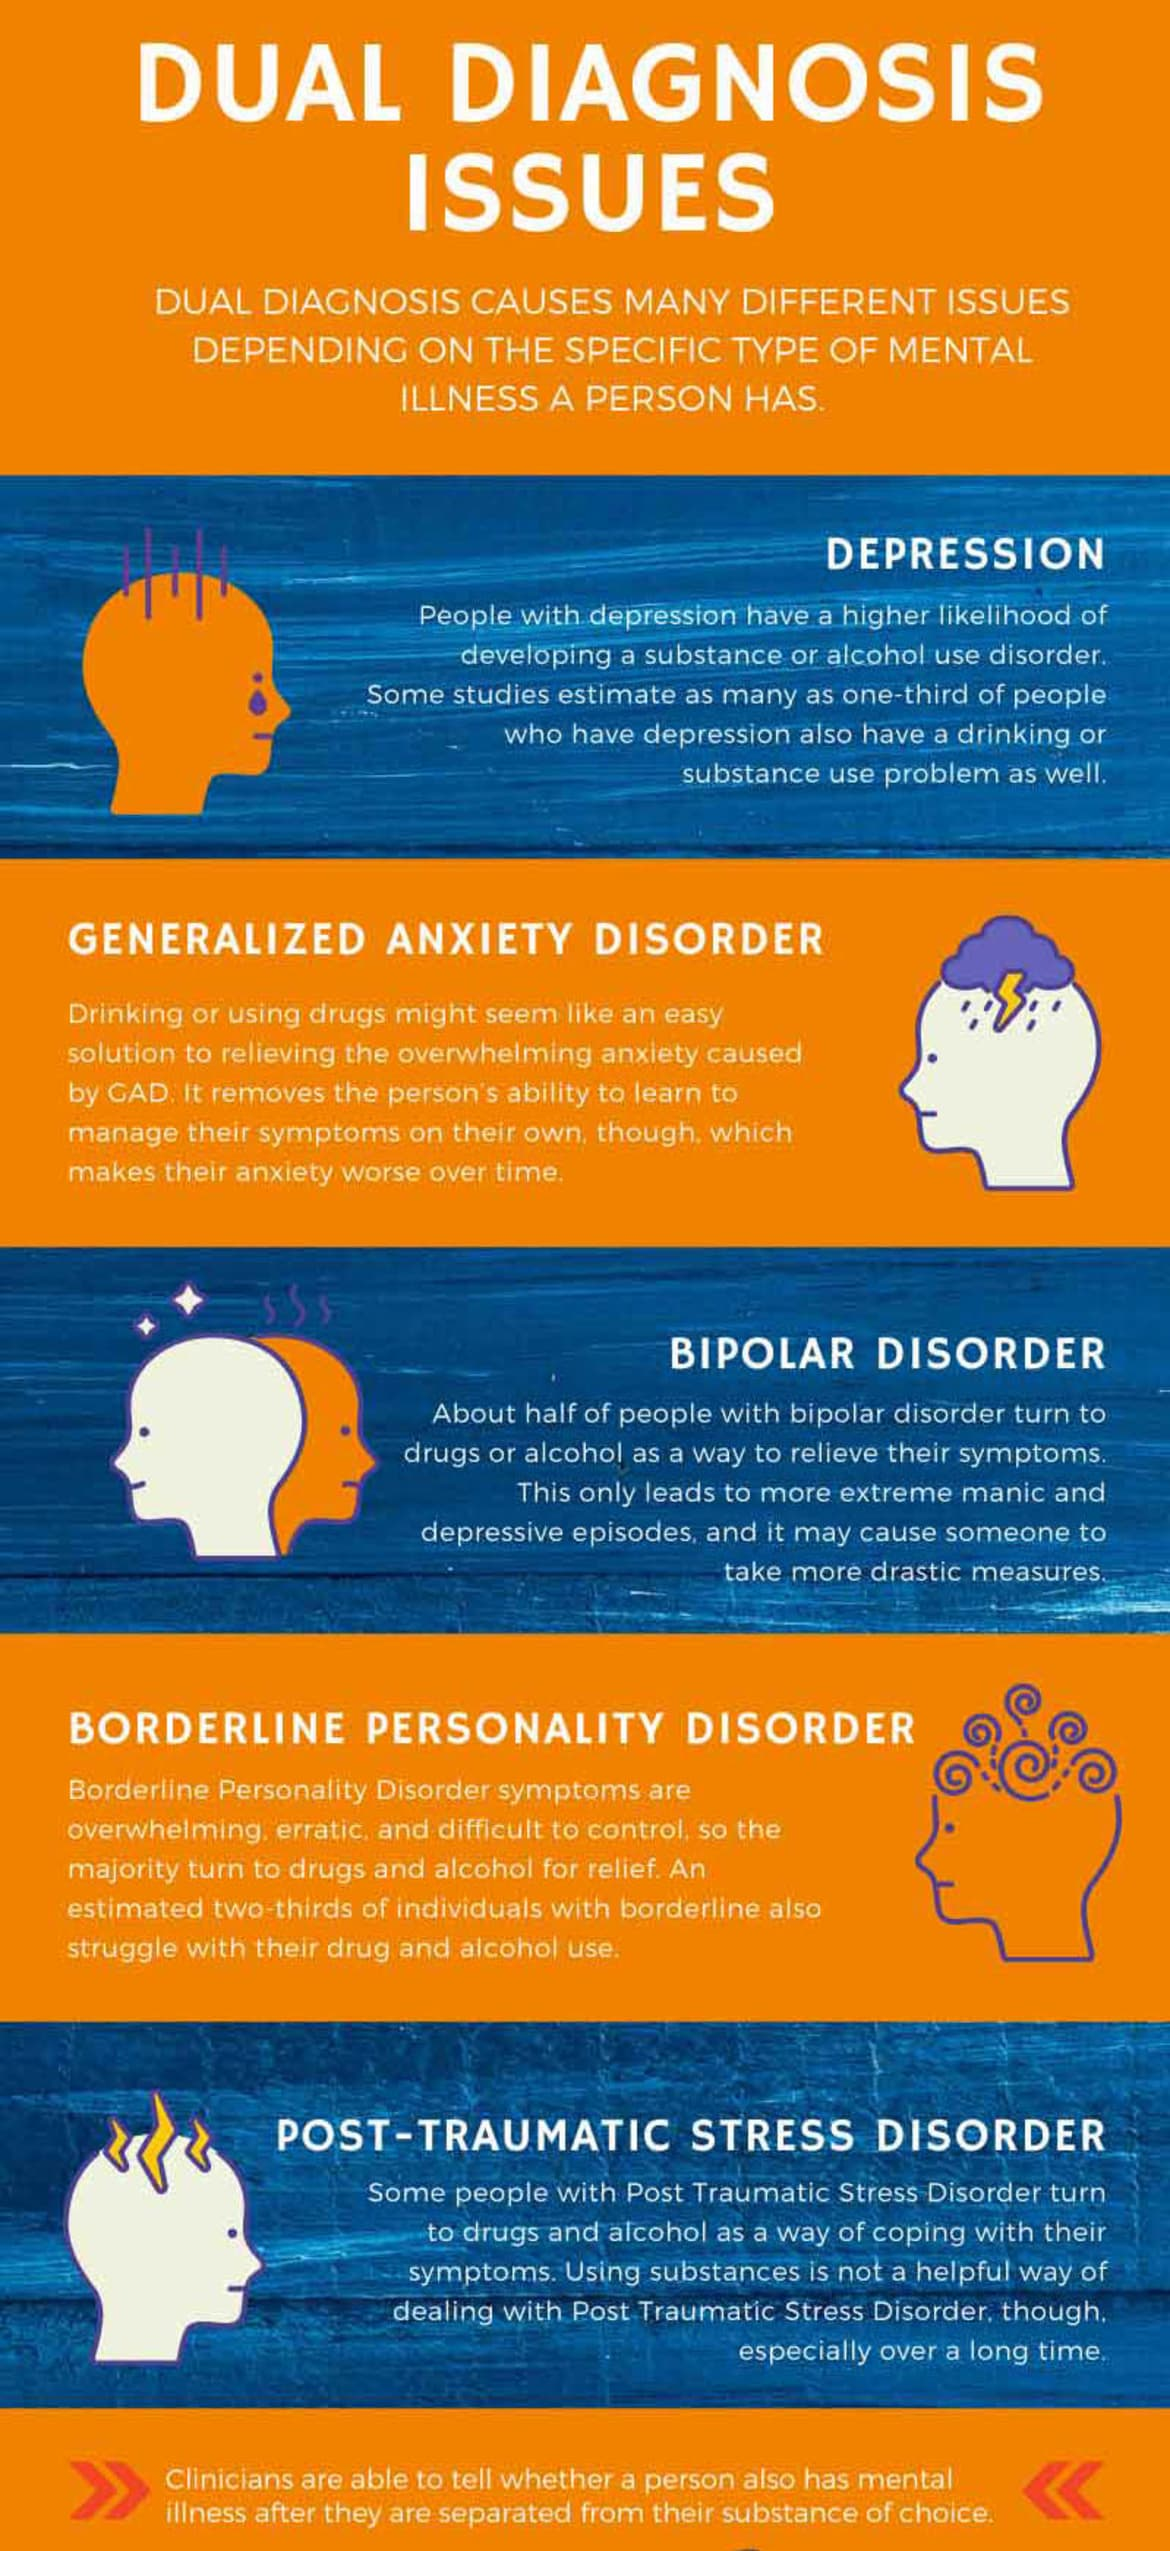 Infographic: Dual diagnosis issues